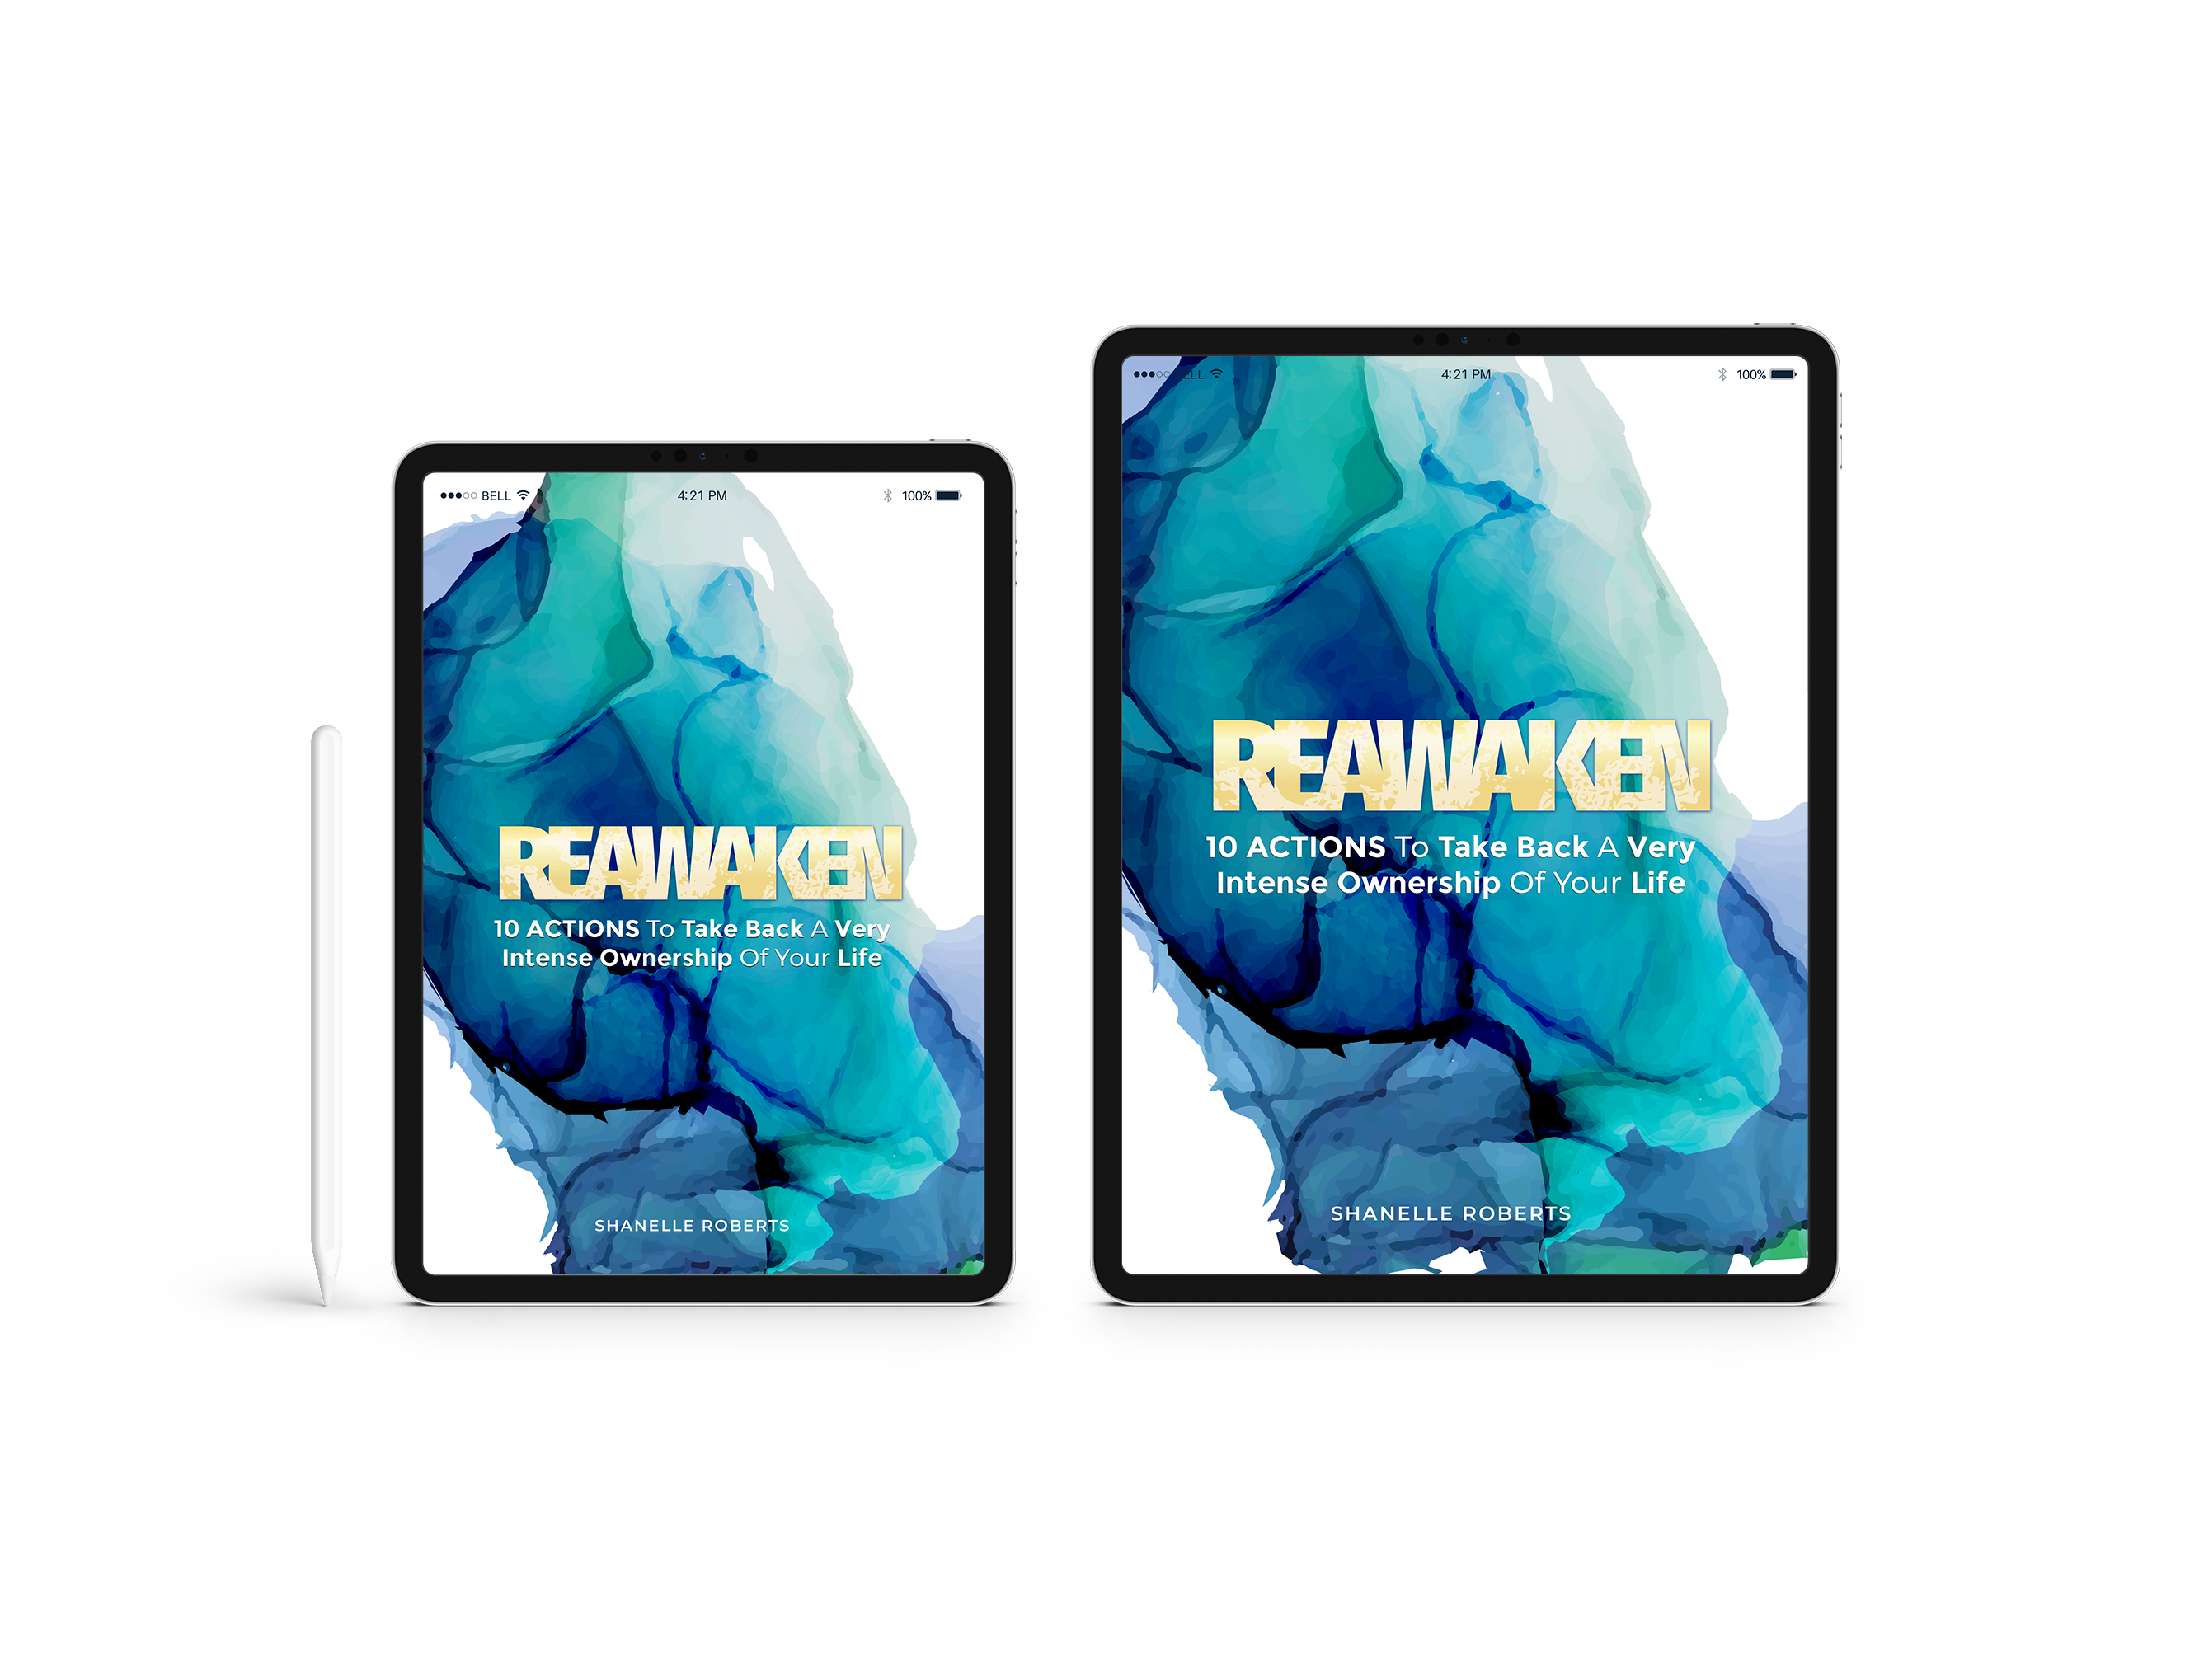 eBook Image of Reawaken: 10 Actions to take back a very intense ownership of your life